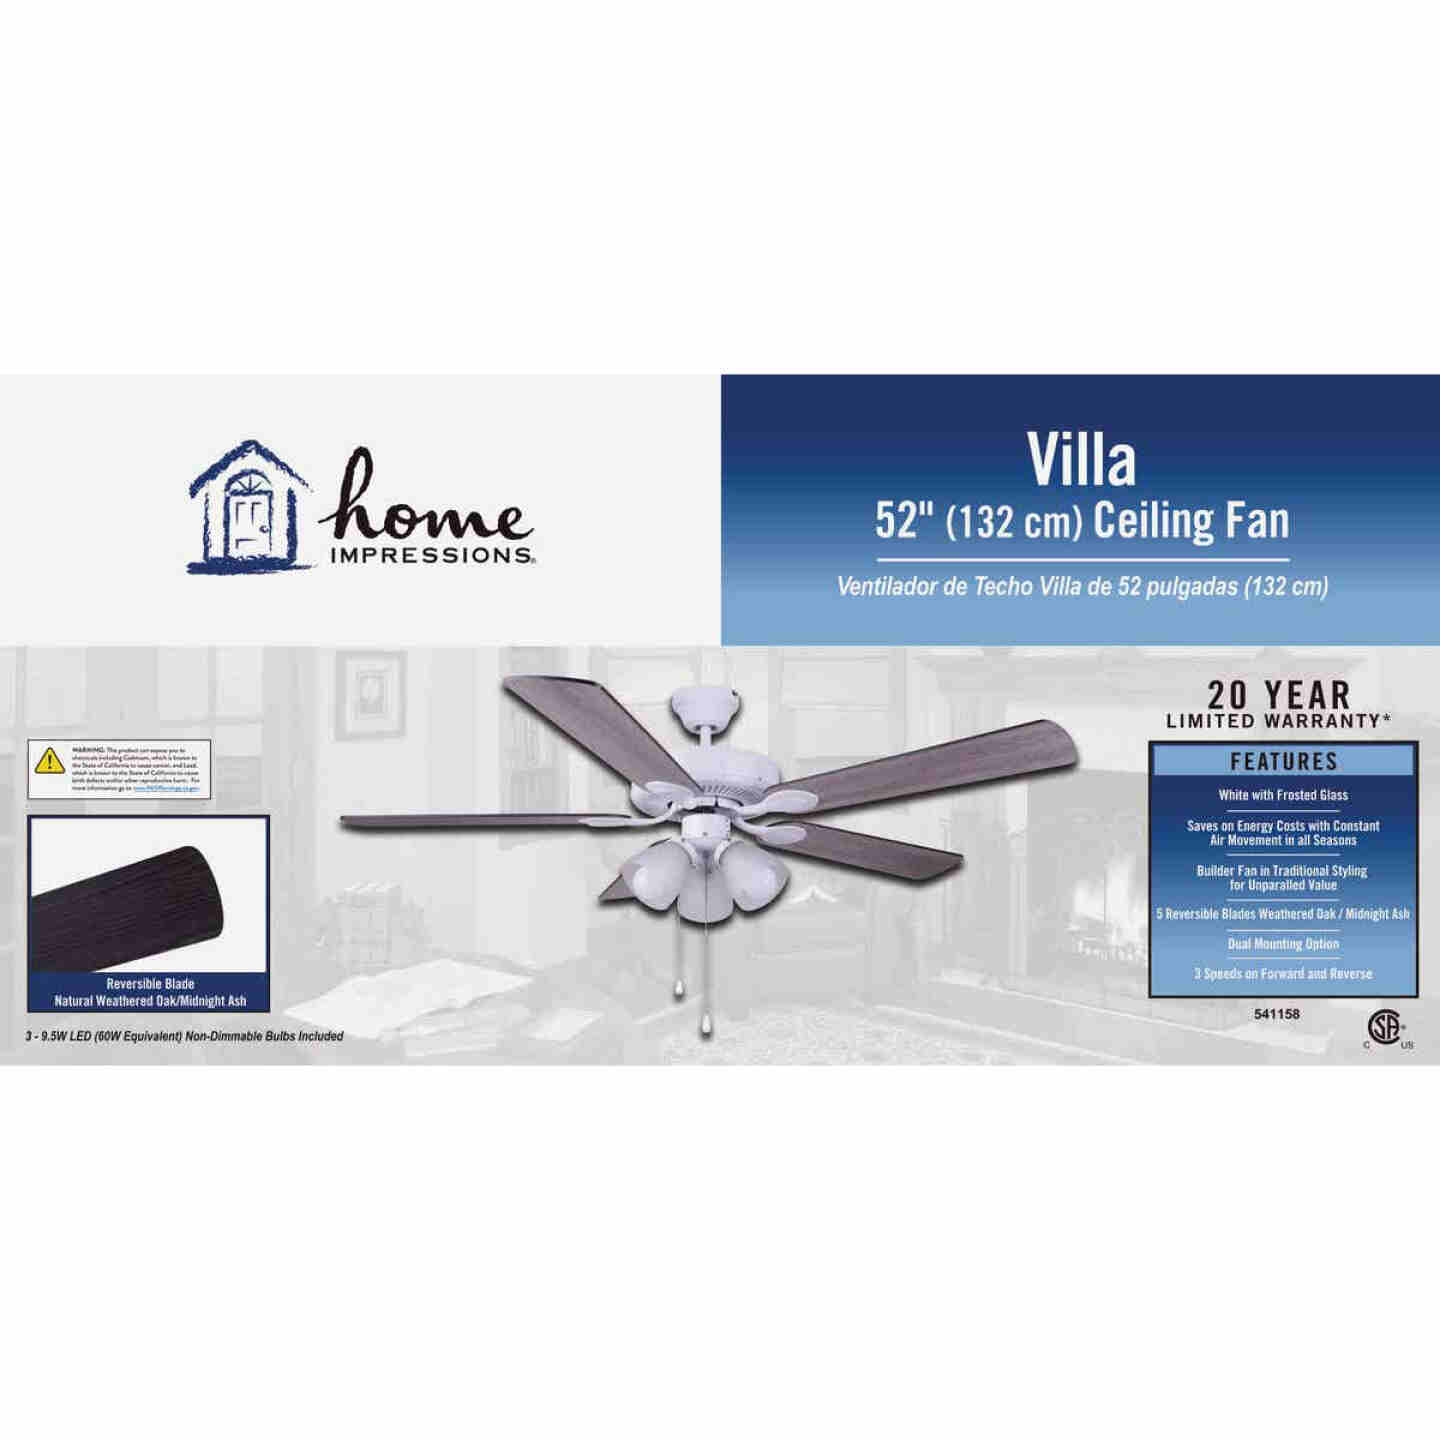 Home Impressions Villa 52 In. White Ceiling Fan with Light Kit Image 2